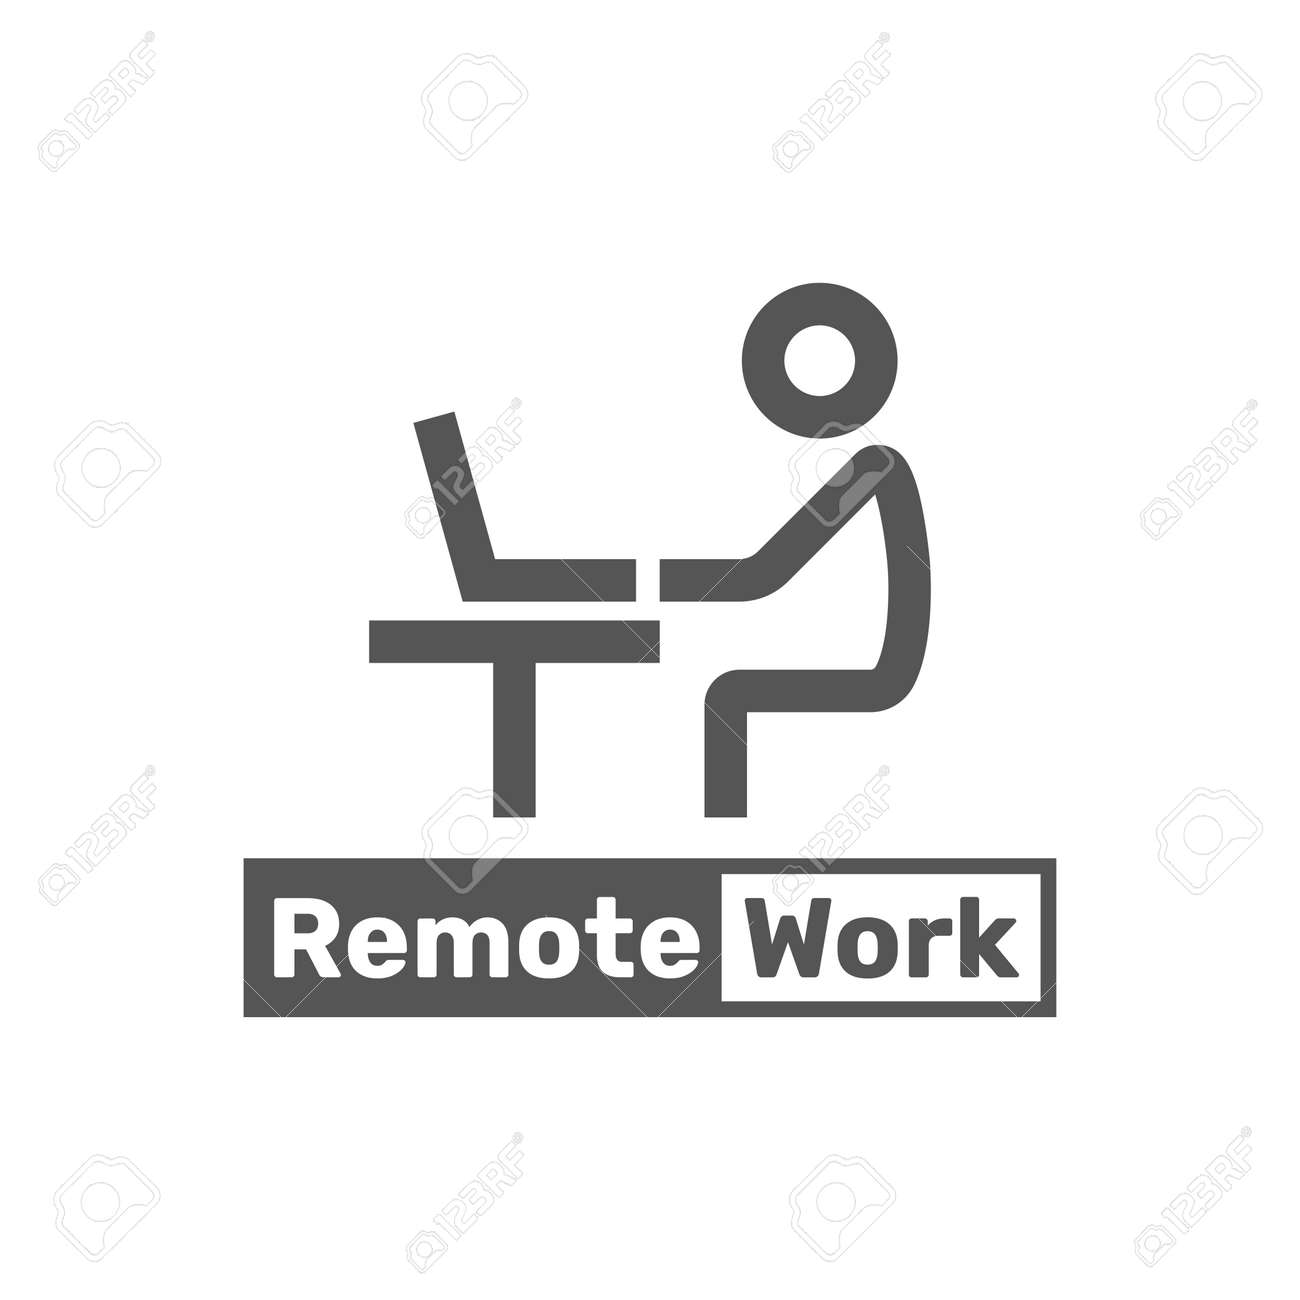 Remote work line icon. Worker, laptop, remote job. Freelance job line icon. Vector illustration can be used for topics like life work balance, remote job, occupation - 158286768